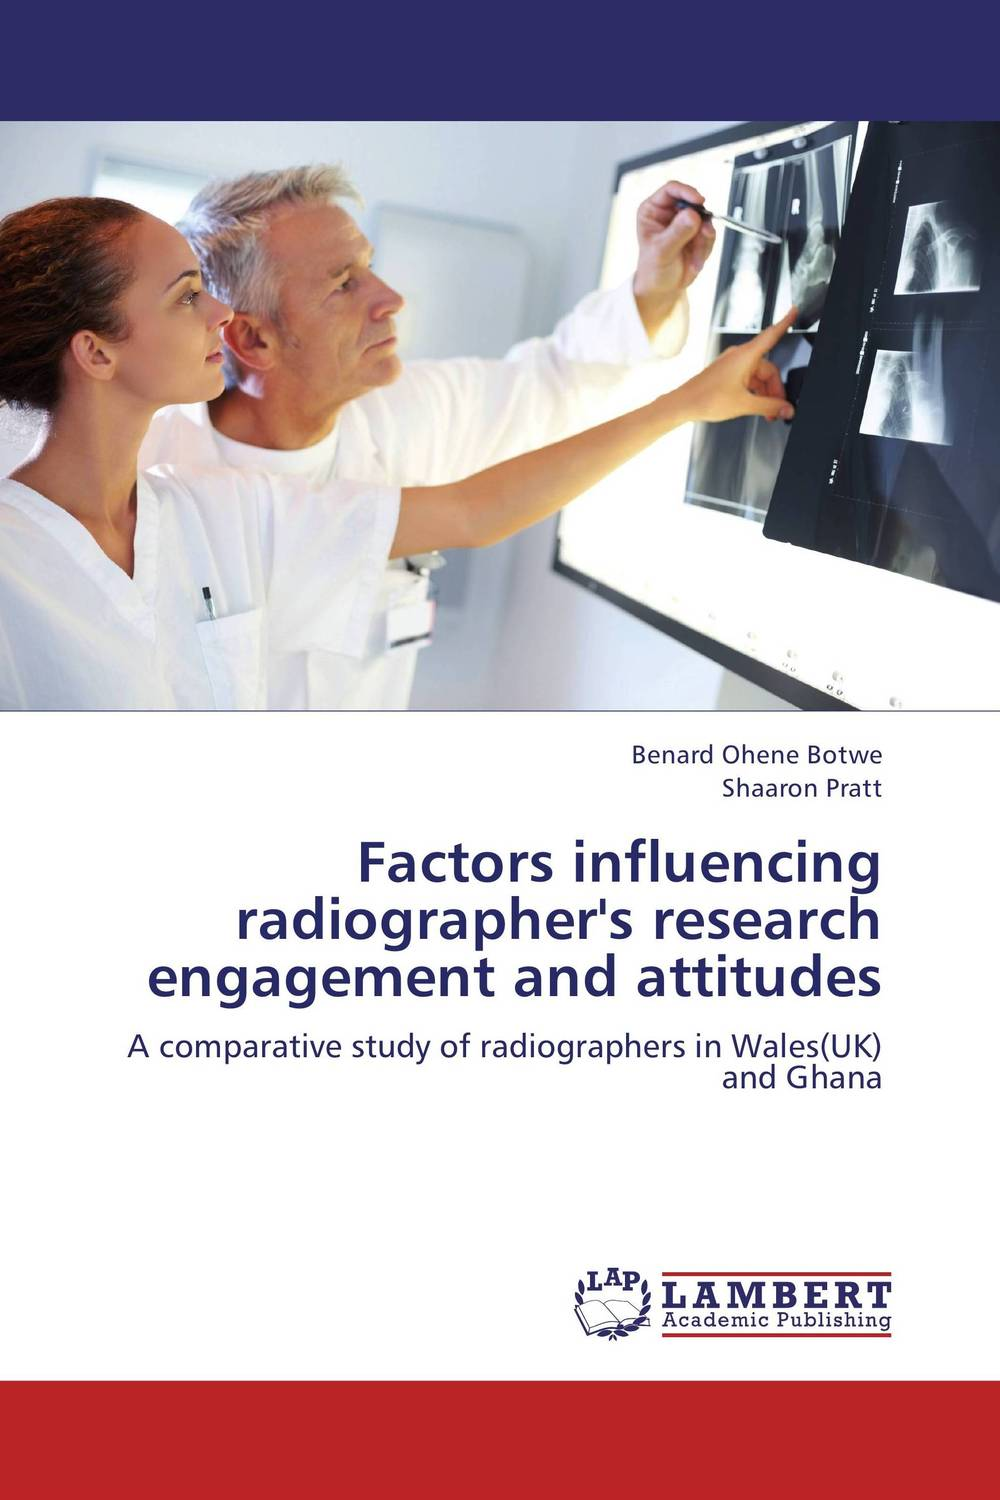 Factors influencing radiographer's research engagement and attitudes a radiography case study